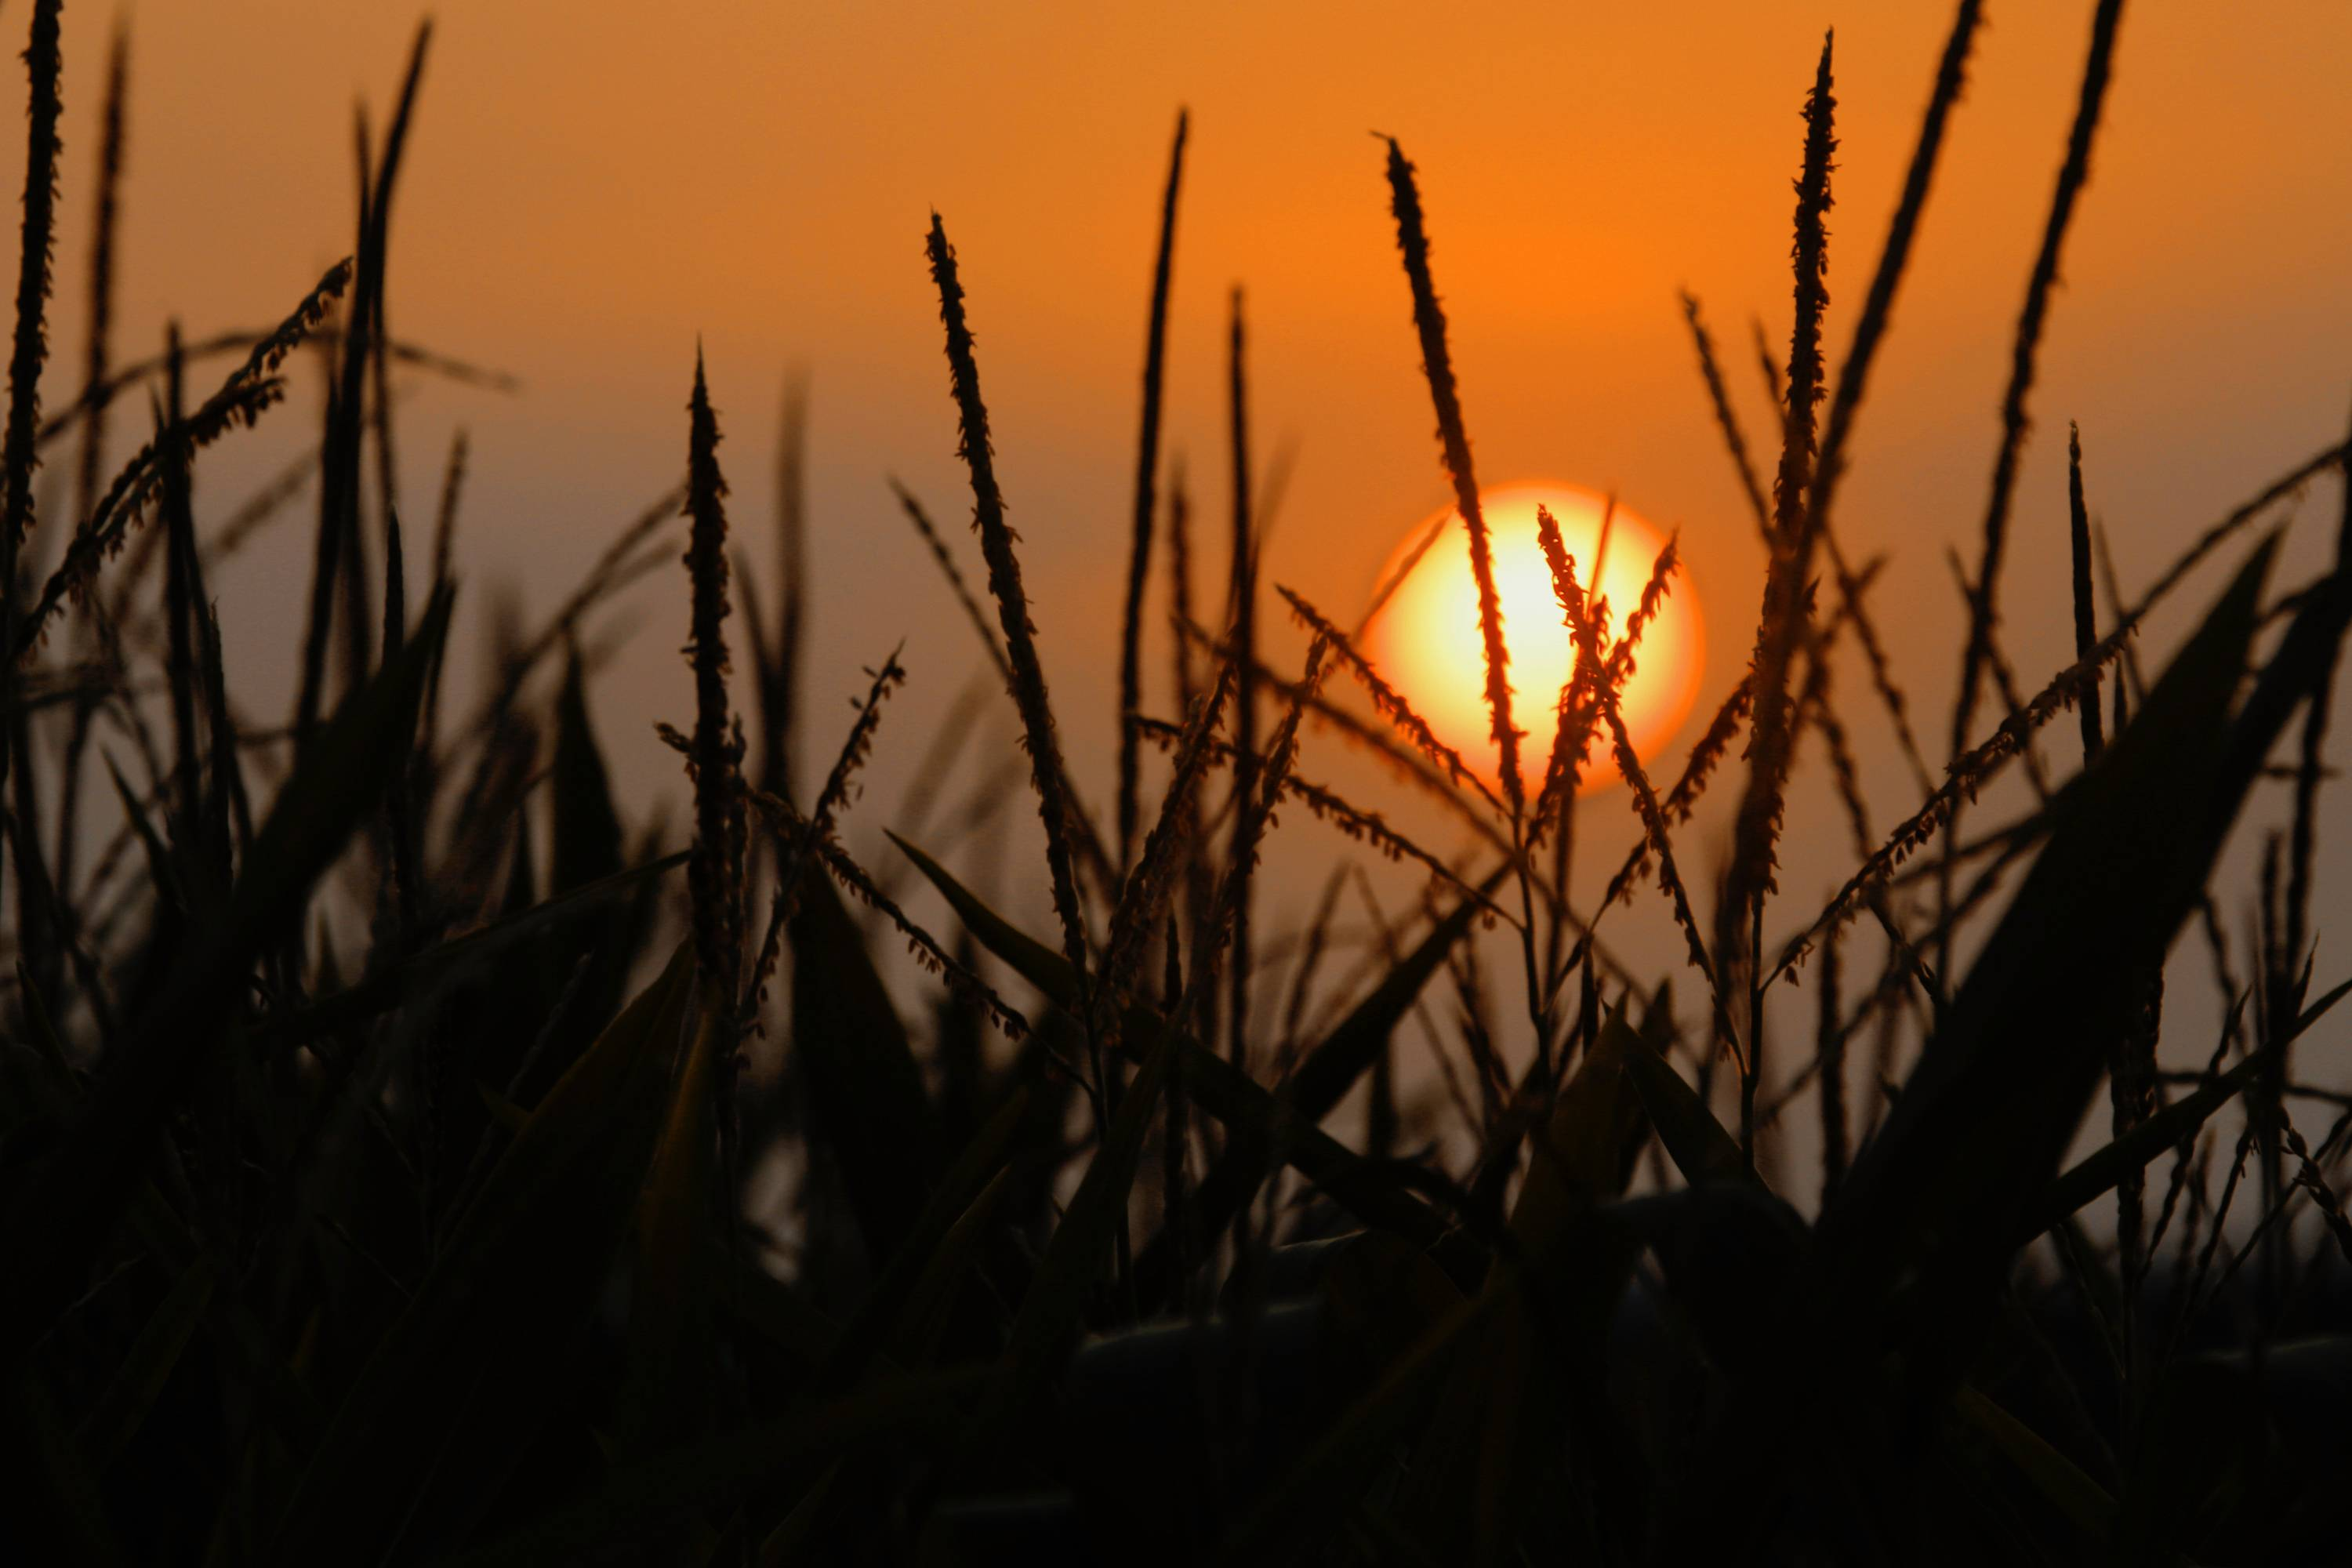 The U.S. Department of Agriculture says Illinois' corn crop is maturing faster than normal and faring well.